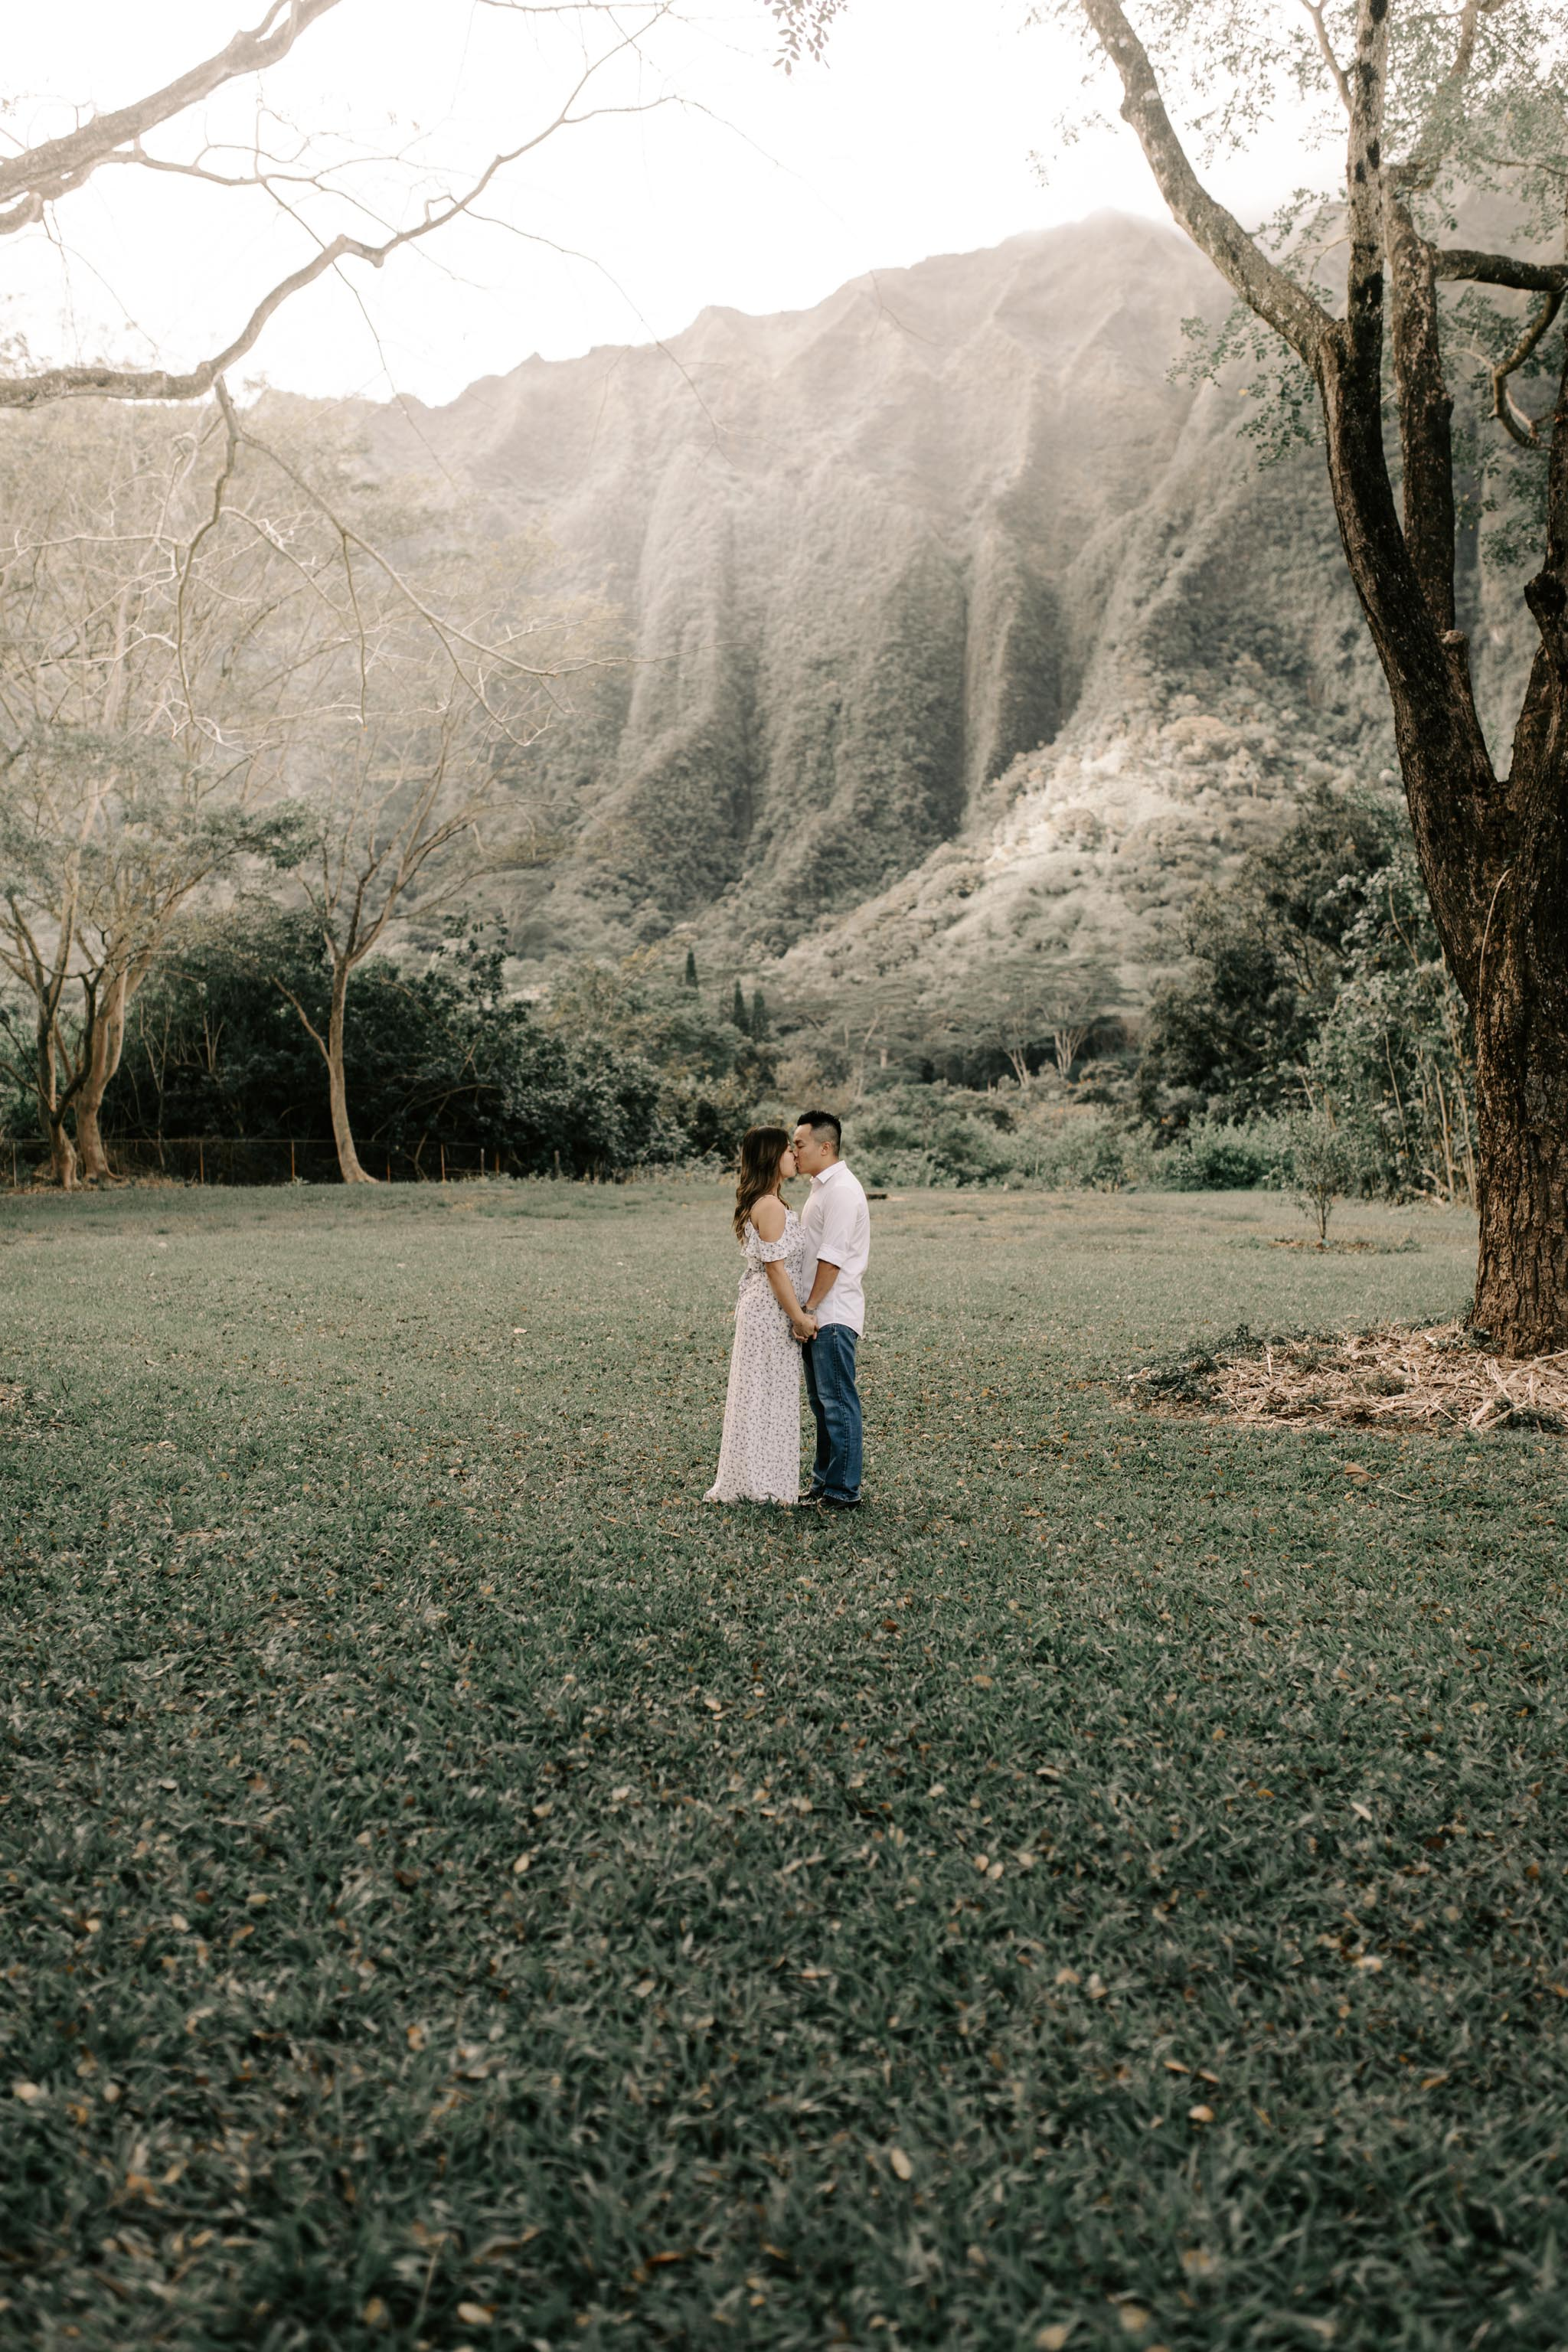 Oahu Mountain Engagements at Hoomaluhia Botanical Garden by Hawaii Wedding Photographer Desiree Leilani